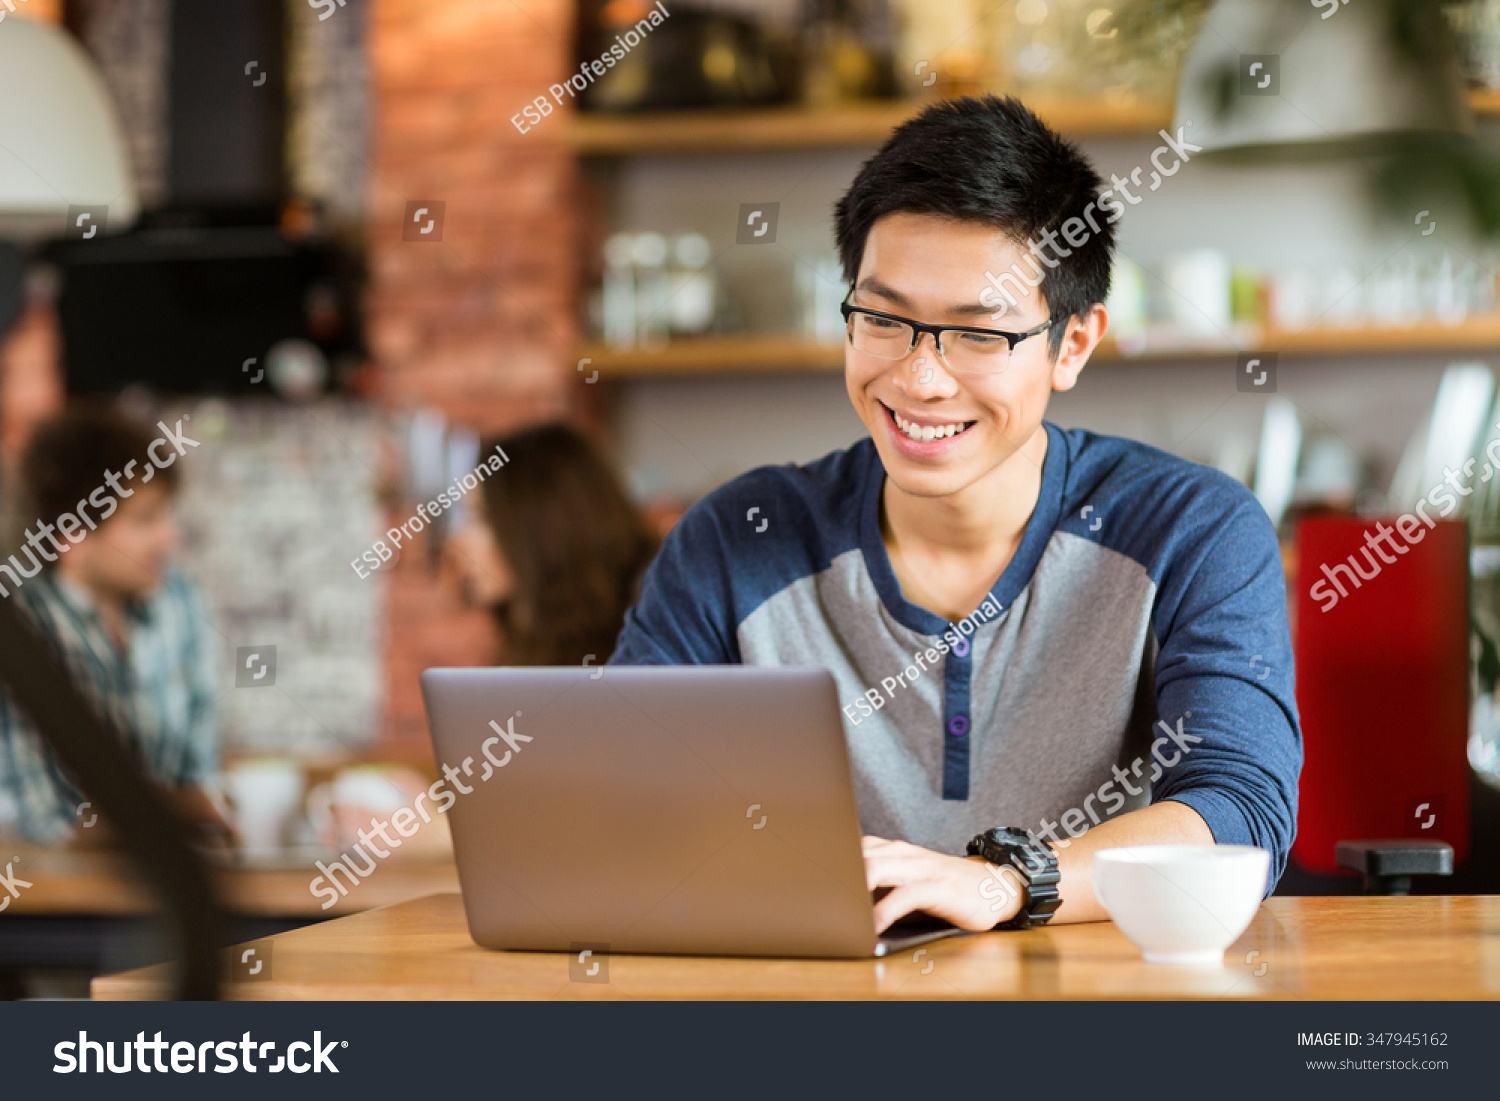 Happy cheerful young asian male in glasses smiling and using laptop in cafe #347945162